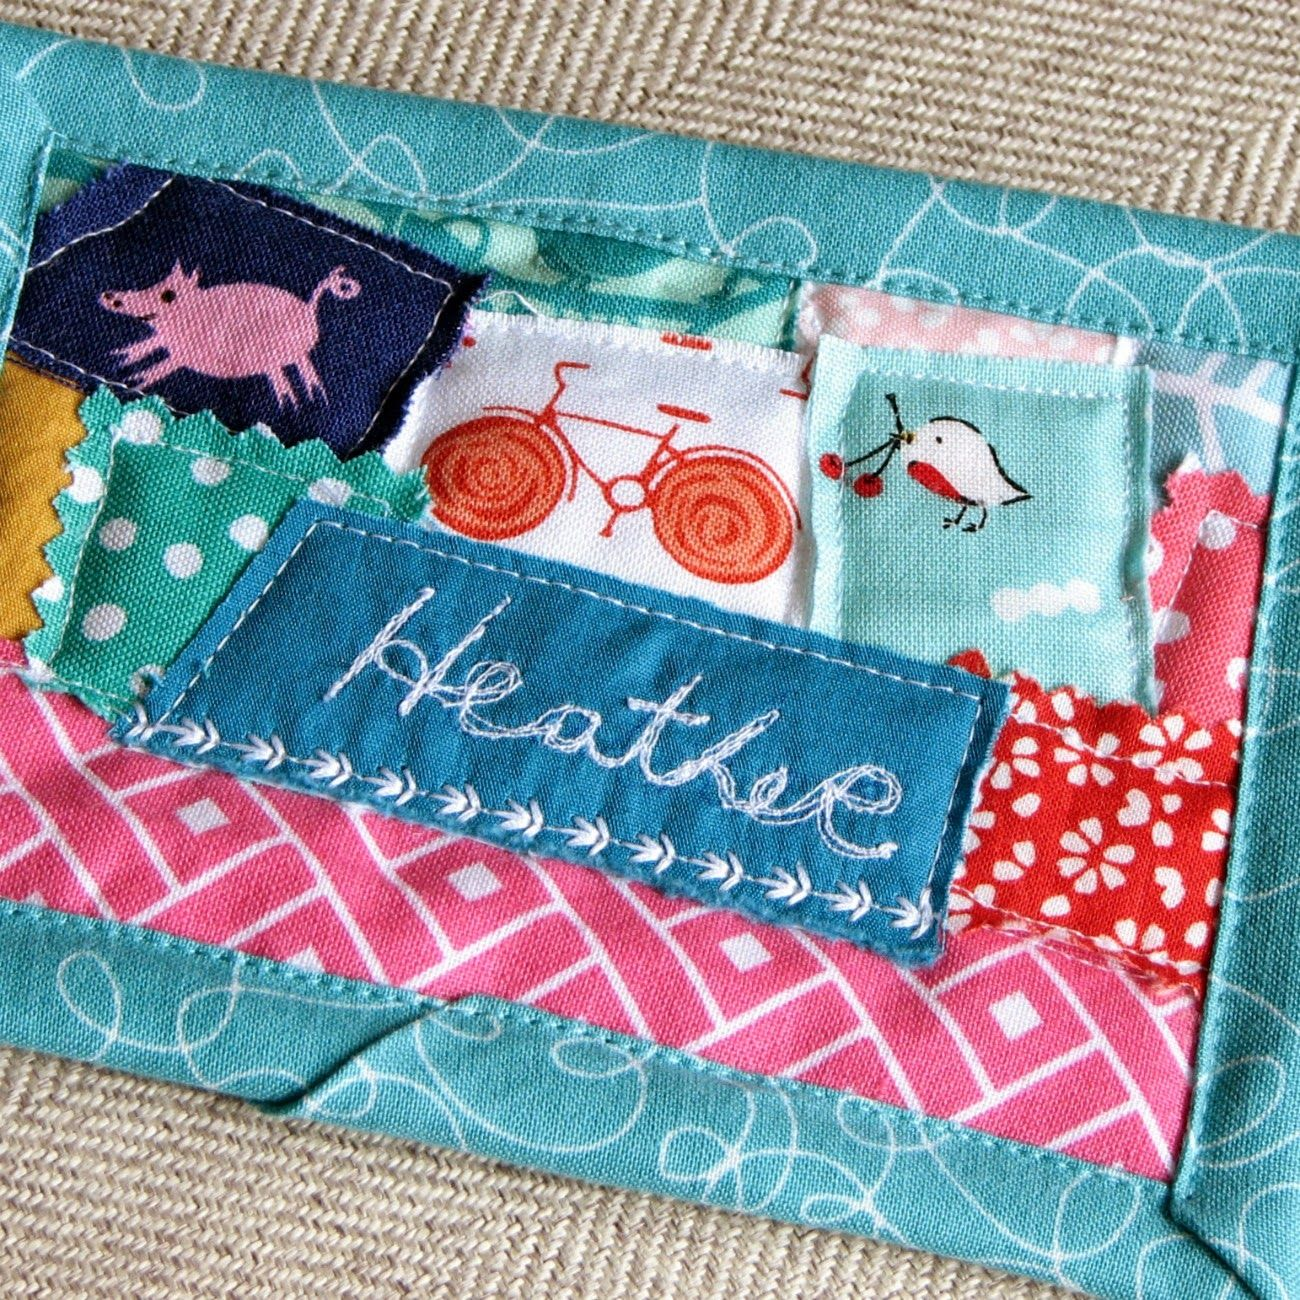 Quilted name tag for modern quilt guild | Modern Parti Quilts ... : quilting name tags - Adamdwight.com